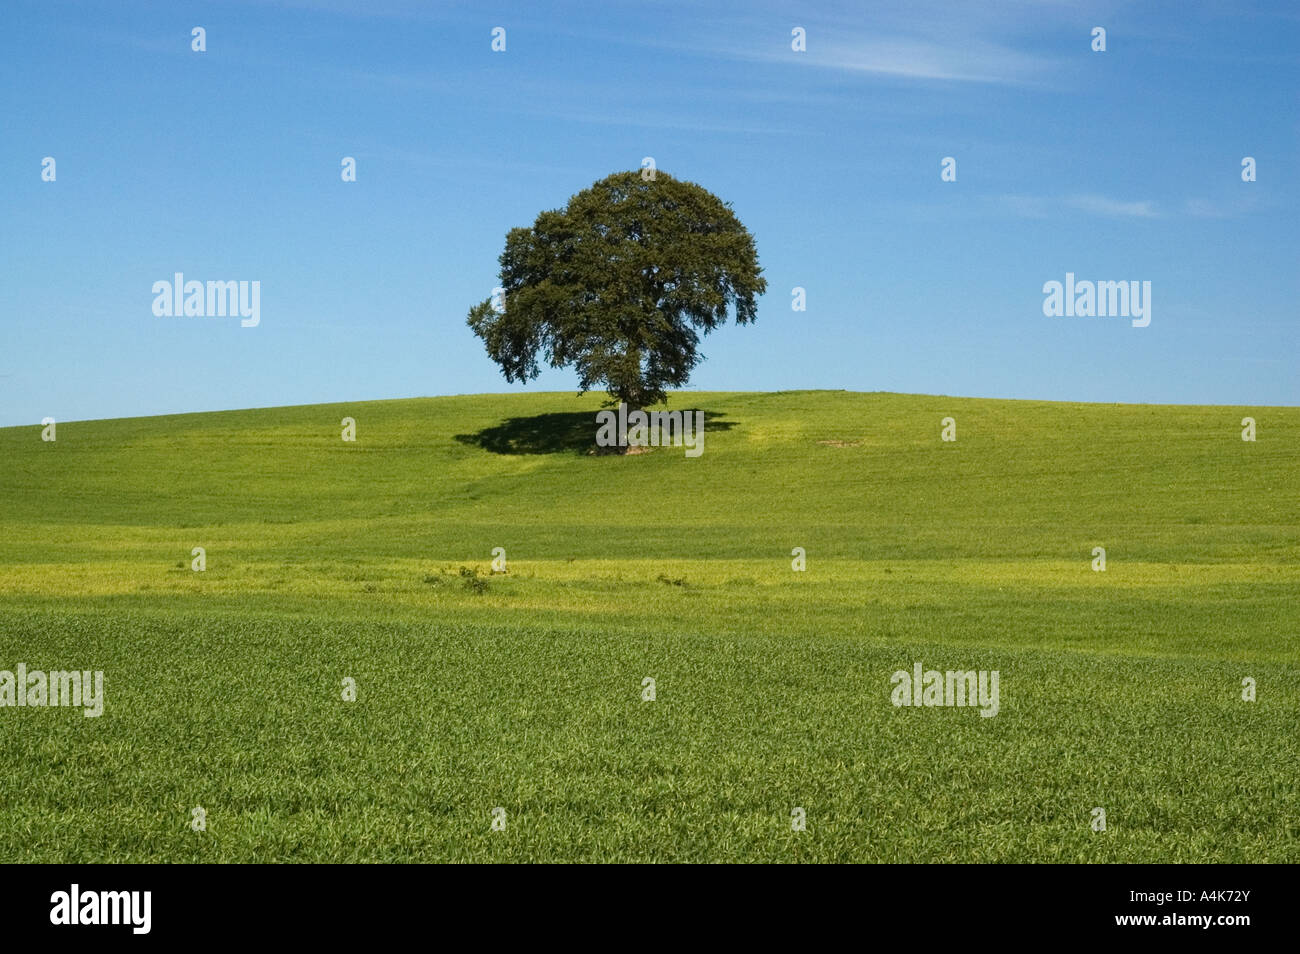 single oak tree ideal as a neutral computer desktop wallpaper A4K72Y